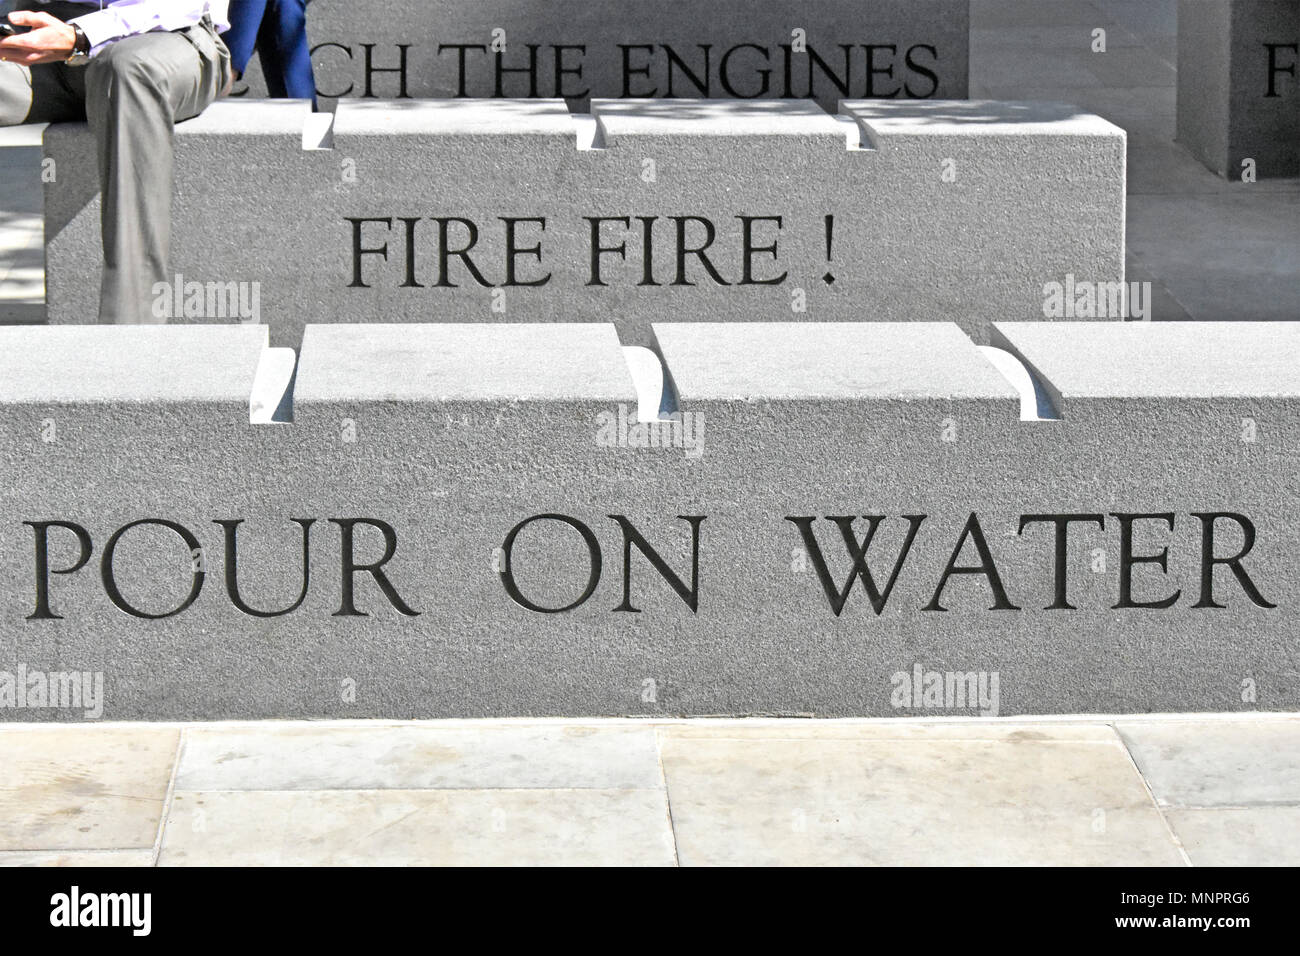 Granite stone bench seats at Monument Column inscribed words from Londons Burning childrens rhyme song poem about the Great Fire of London England UK - Stock Image